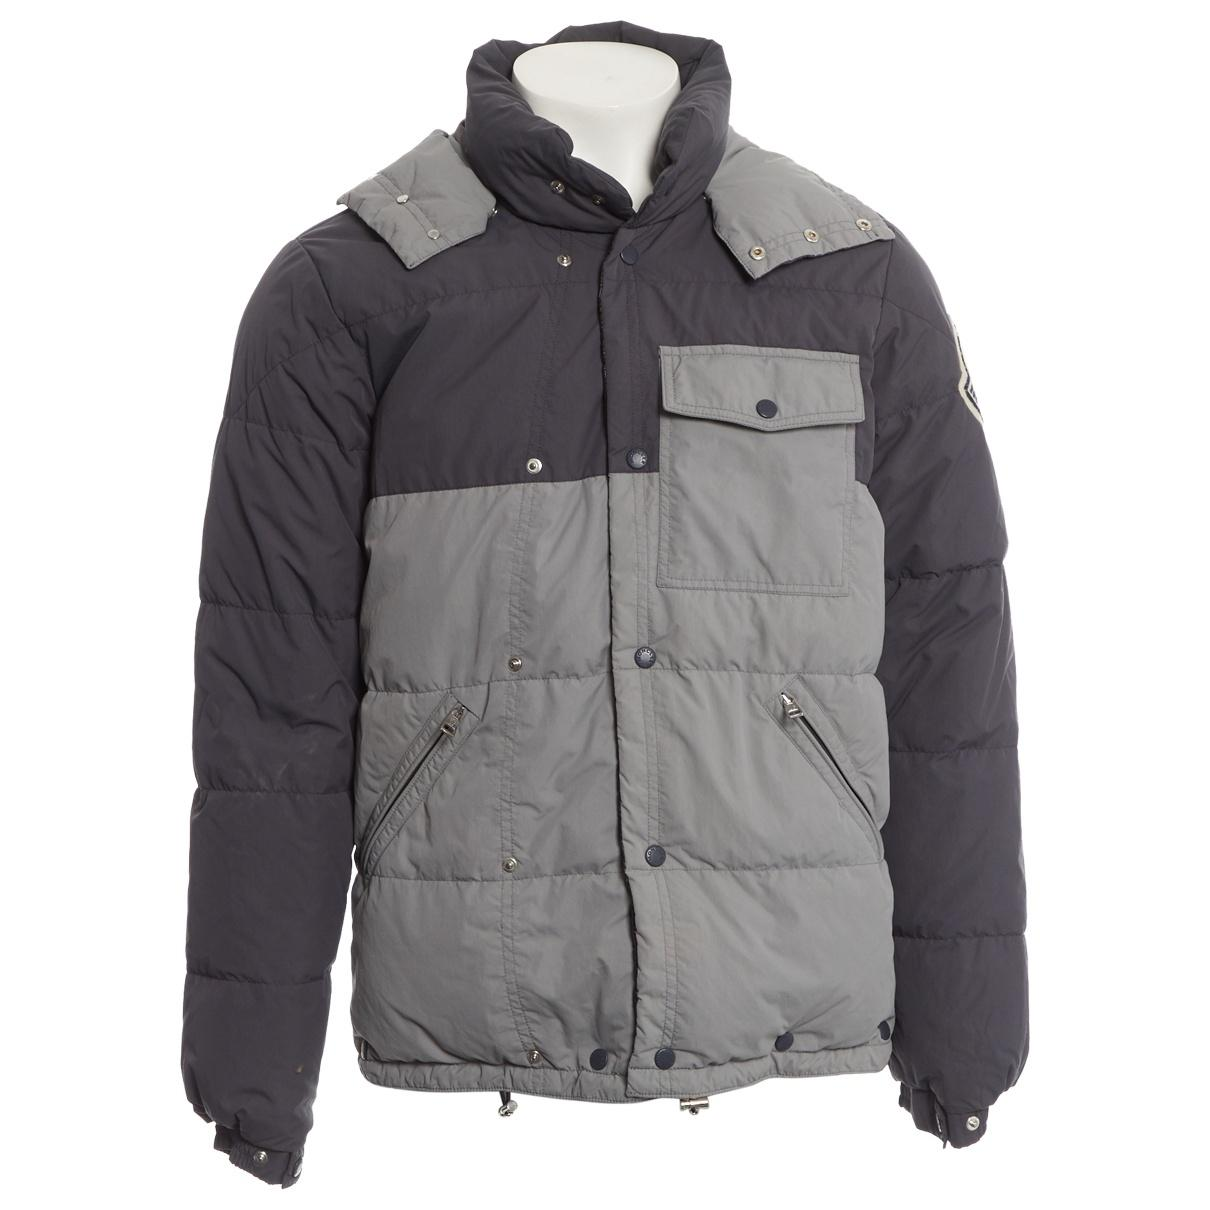 2a65eab8d2 Moncler. Men's Gray Jacket. £496 From Vestiaire Collective